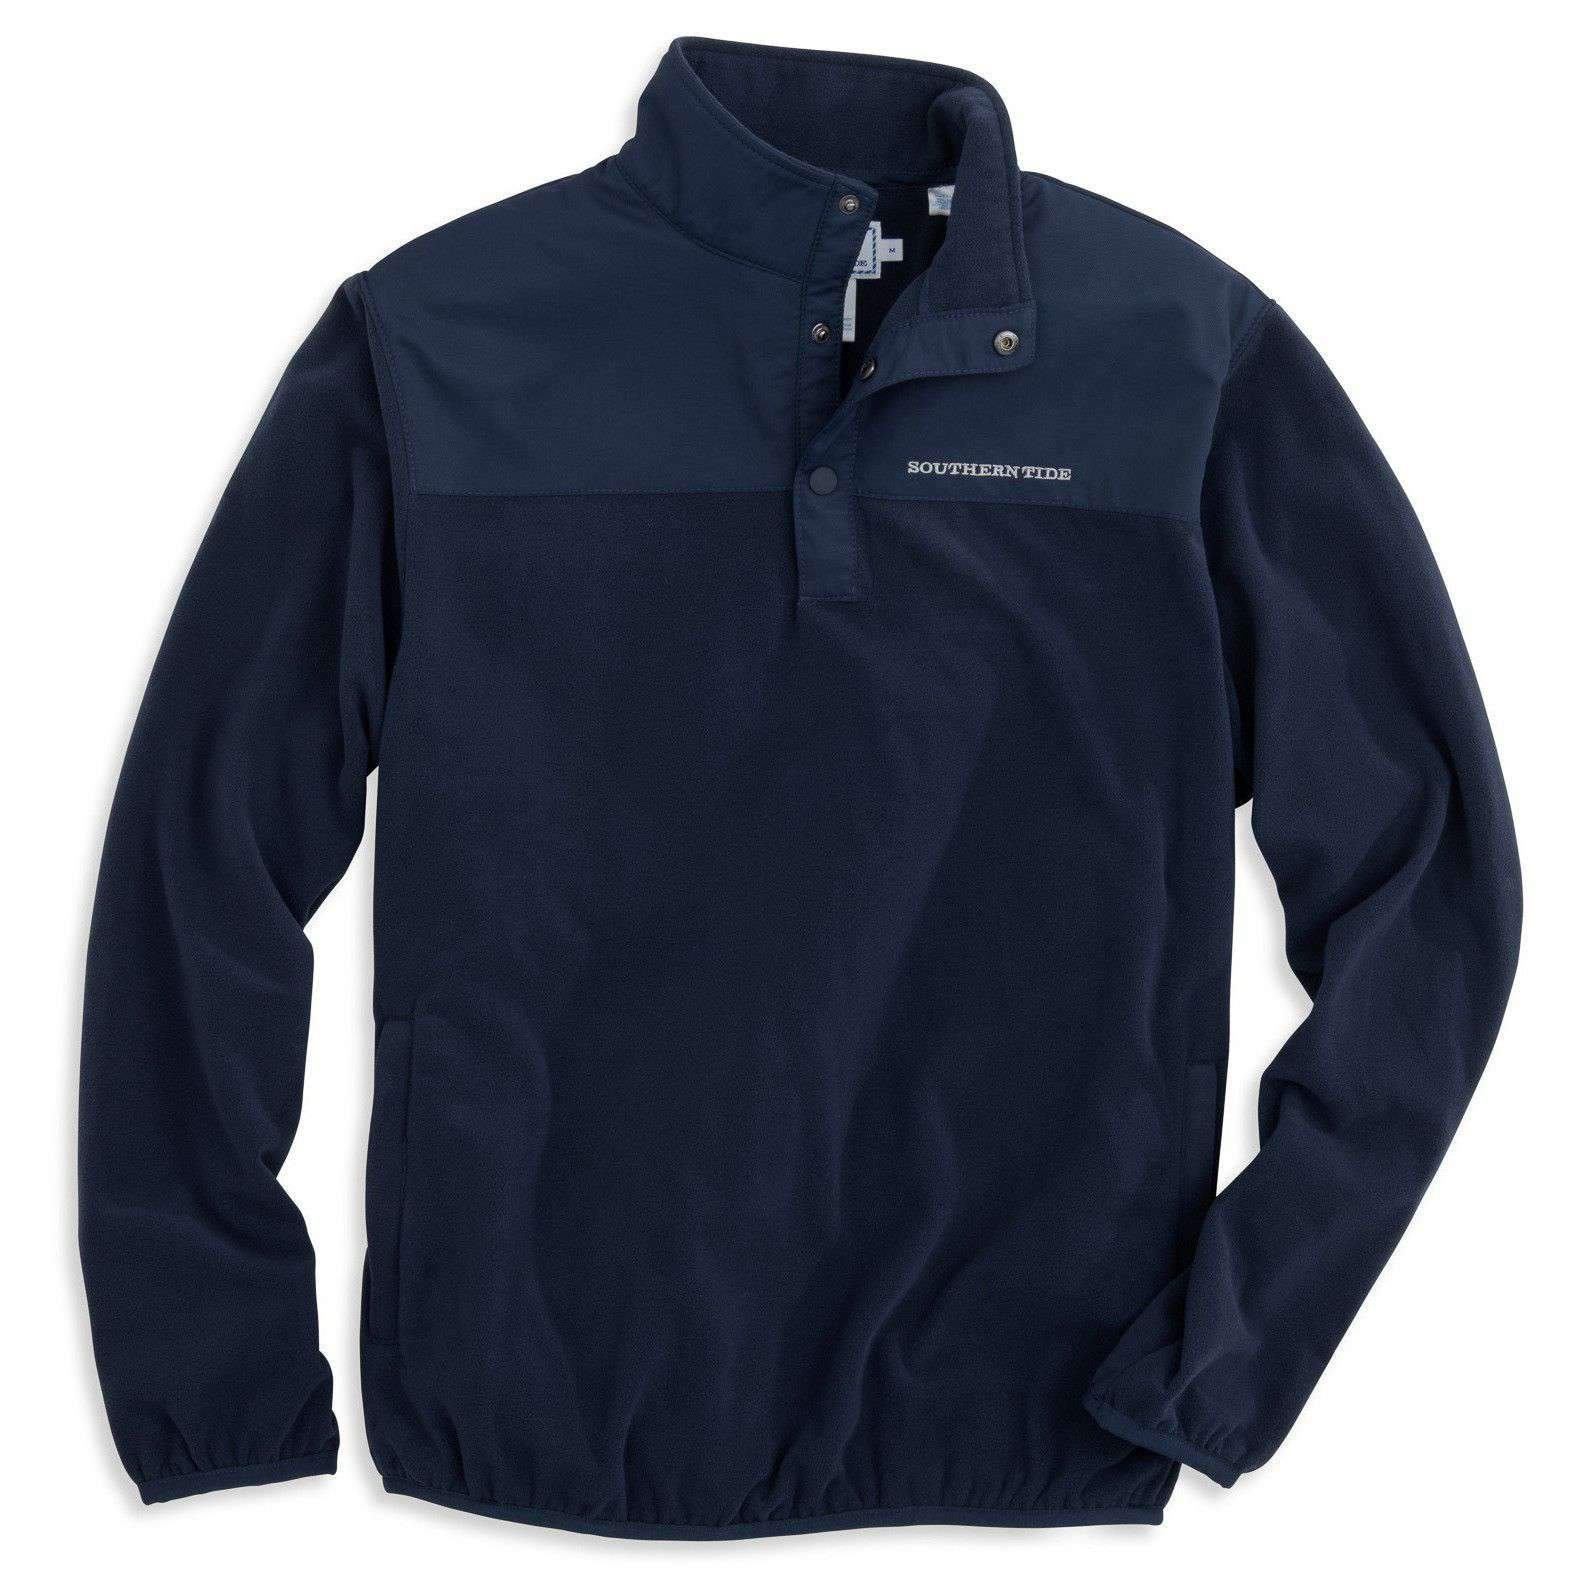 Image of Navigational Fleece Pullover in True Navy by Southern Tide